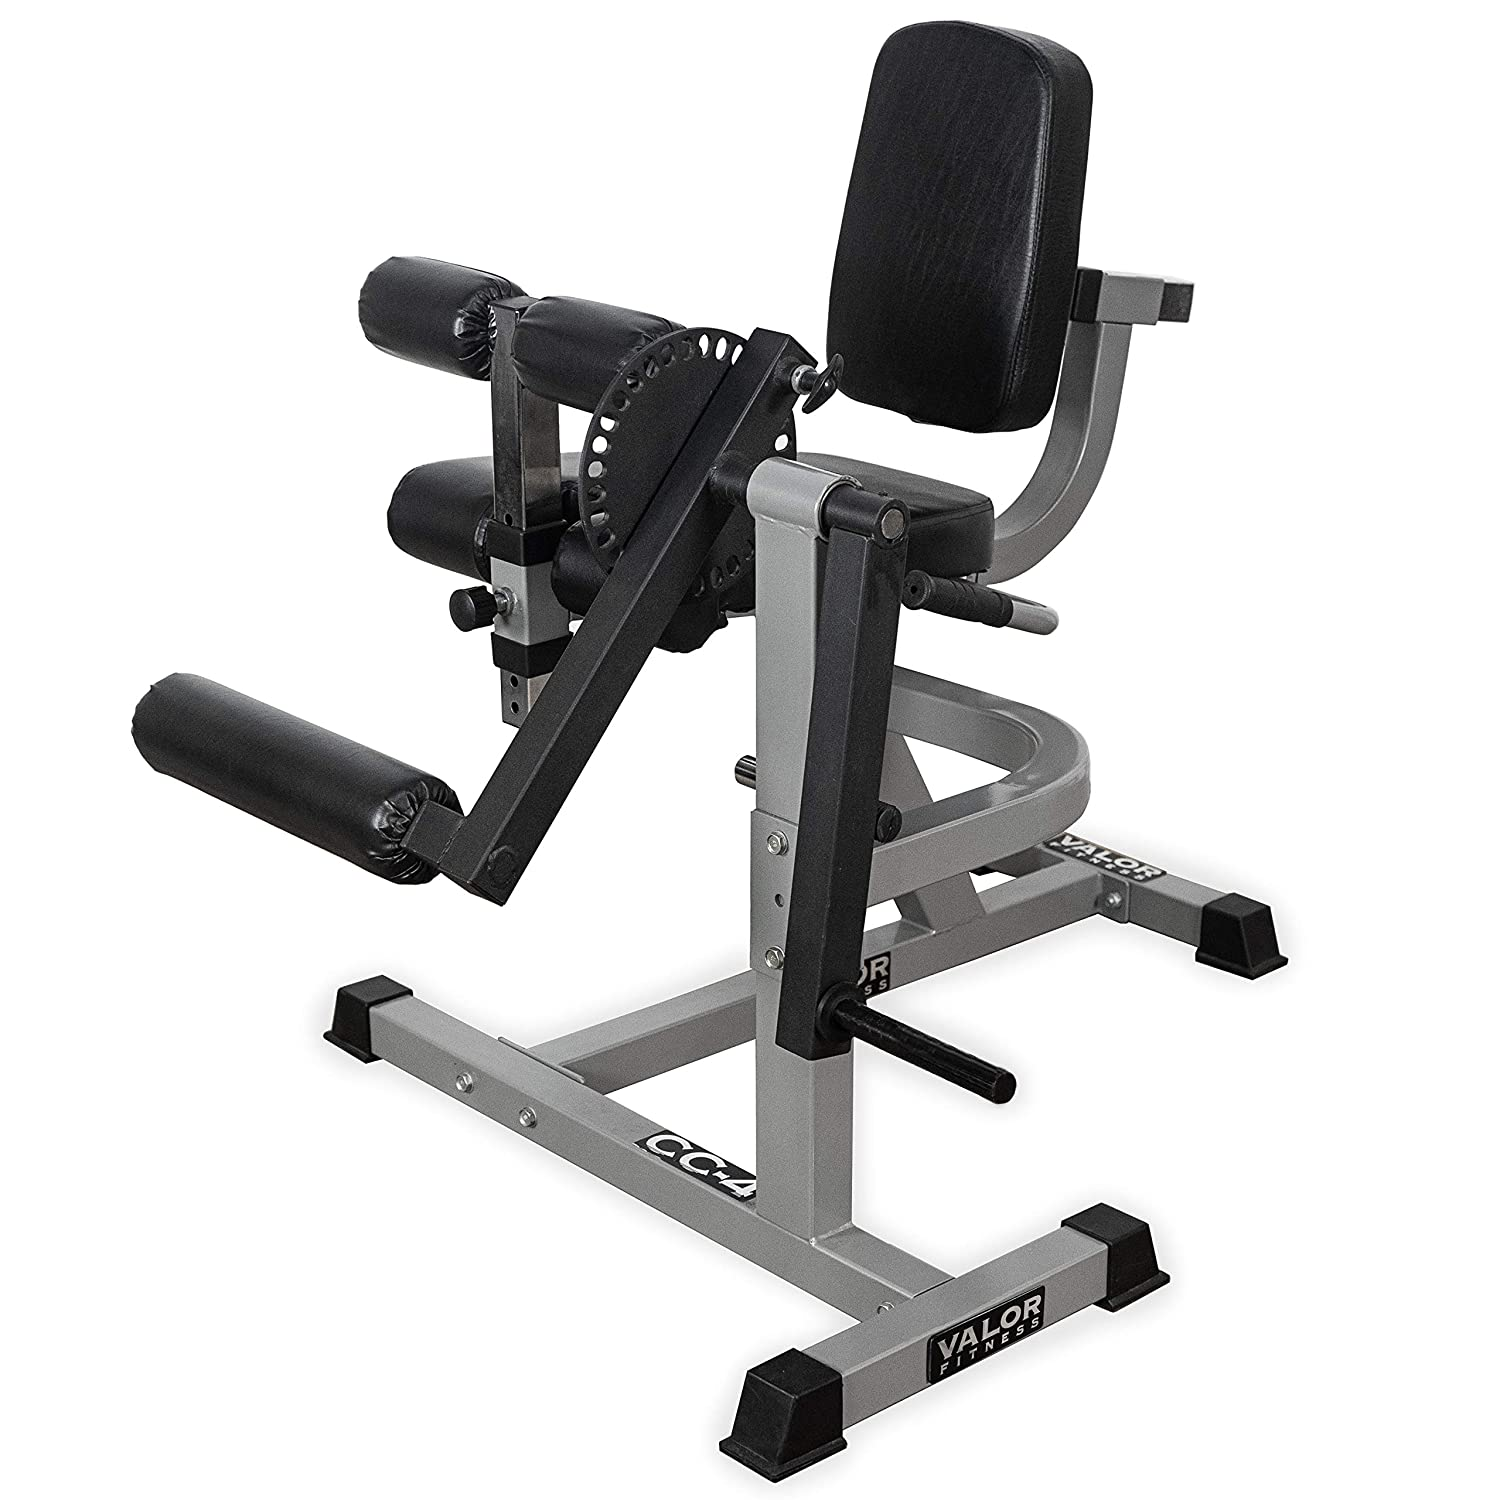 Valor Fitness CC-4 Adjustable Leg Curl Extension Machine